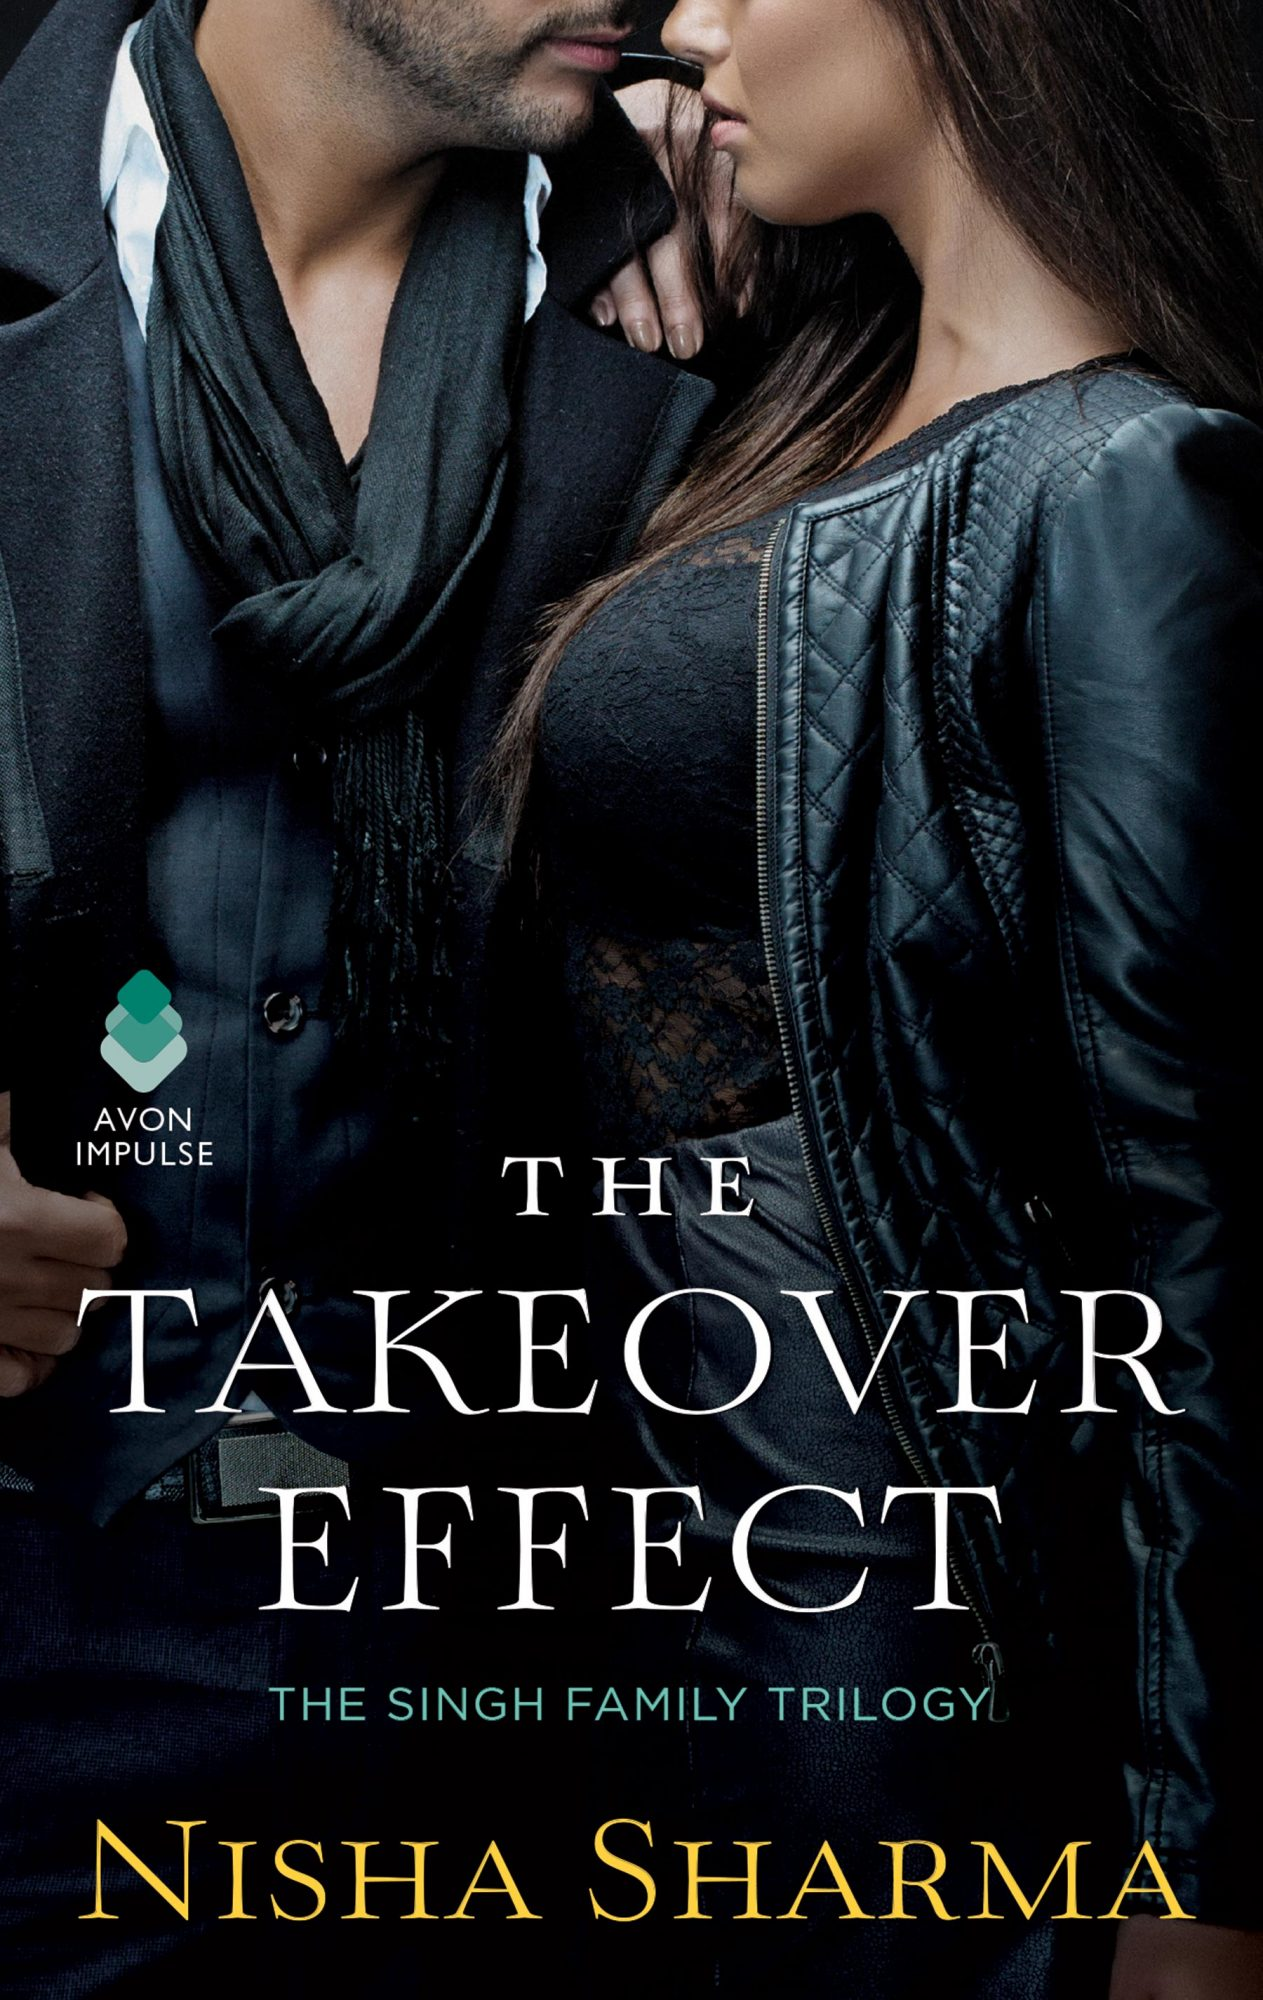 The Takeover Effect by Nisha Sharma CR: HarperCollins